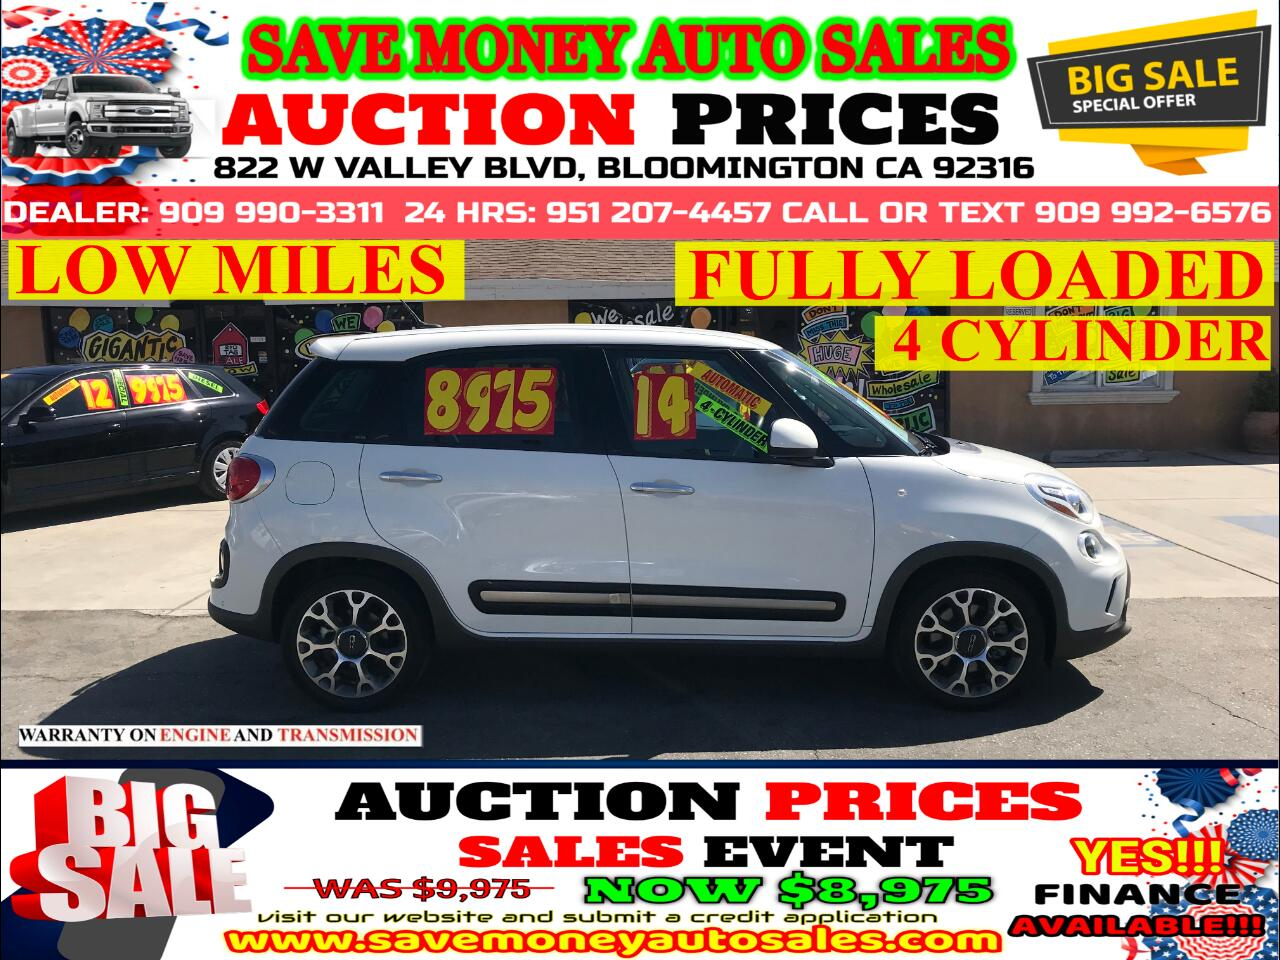 2014 Fiat 500L 4 CYLINDER> LOW MILES> EXTRA CLEAN> FULLY LOADED